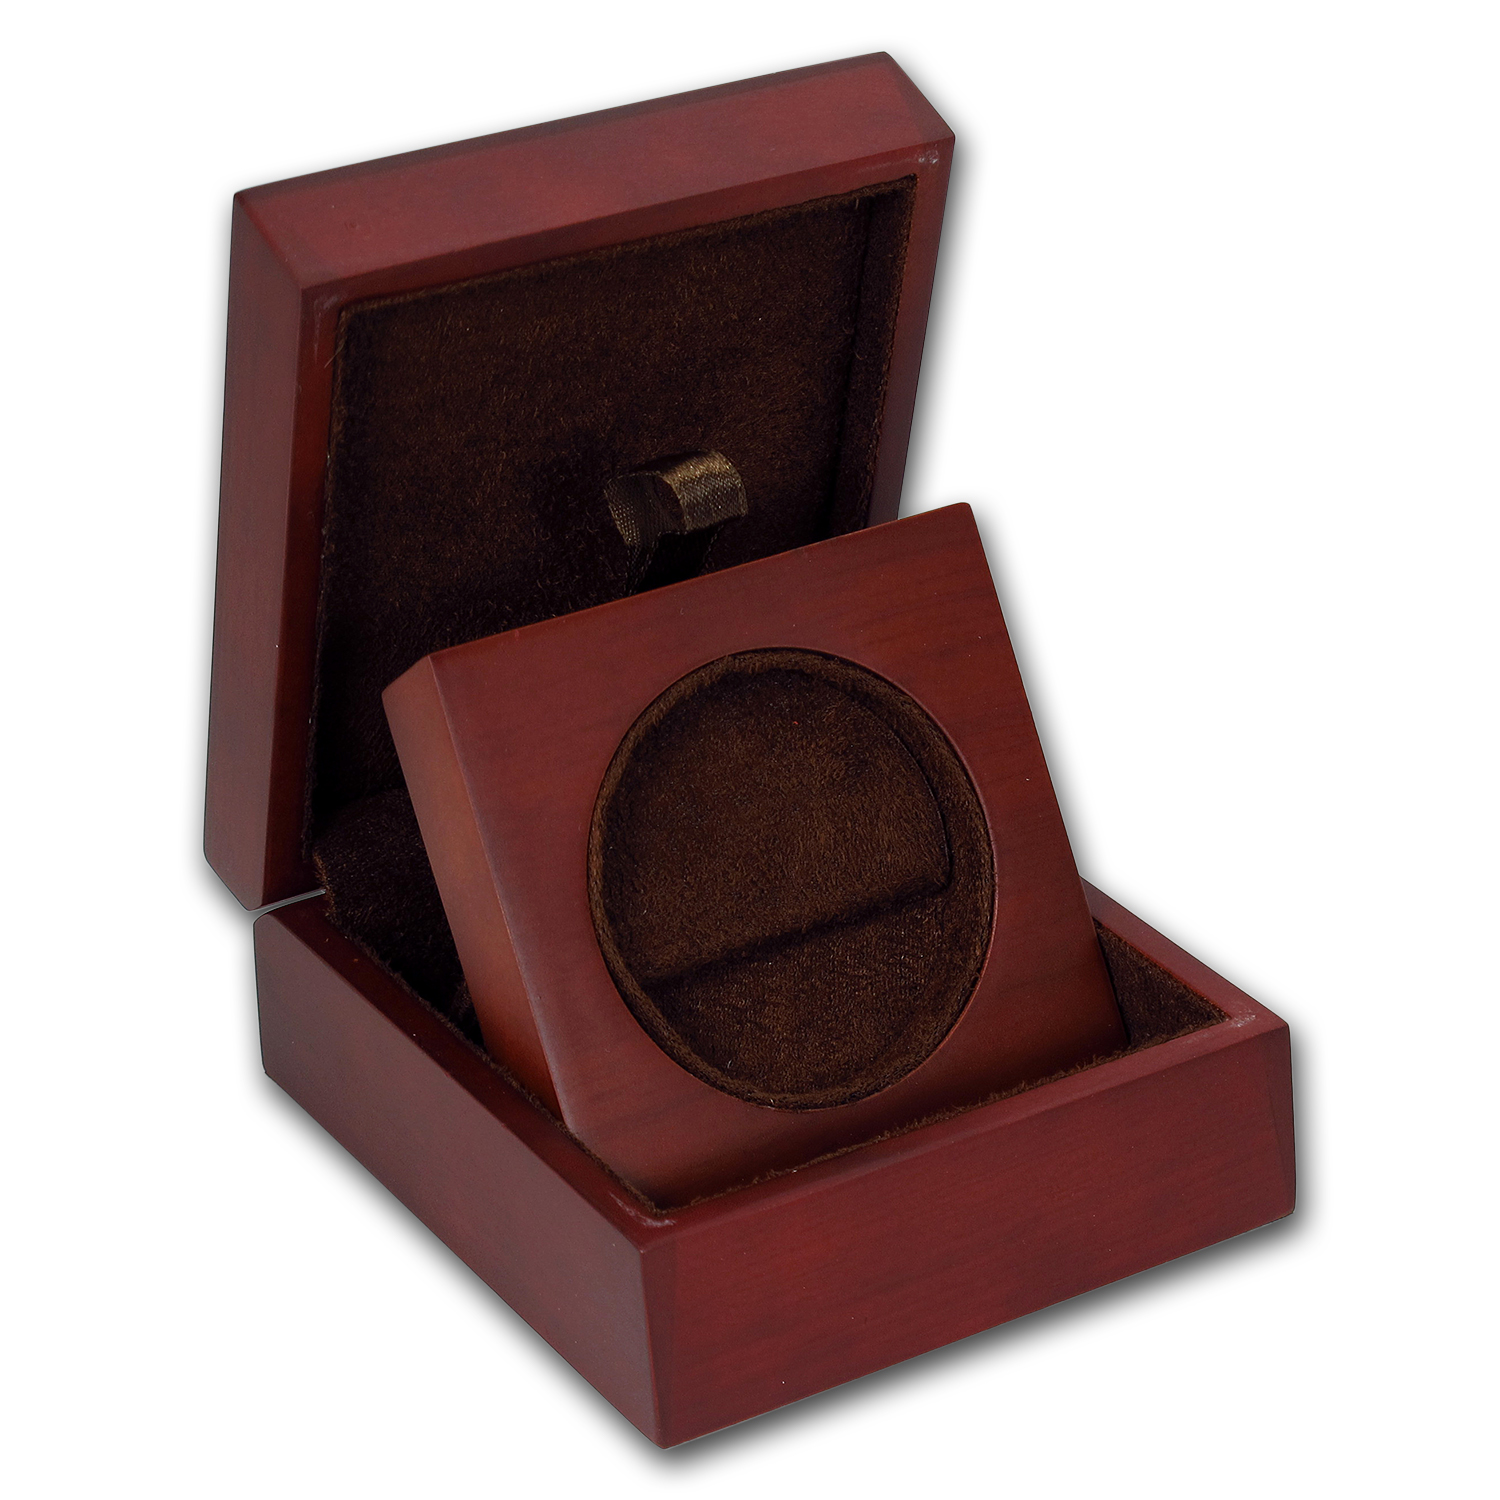 APMEX Wood Gift Box - Includes 43.6 mm Direct Fit Air-Tite Holder